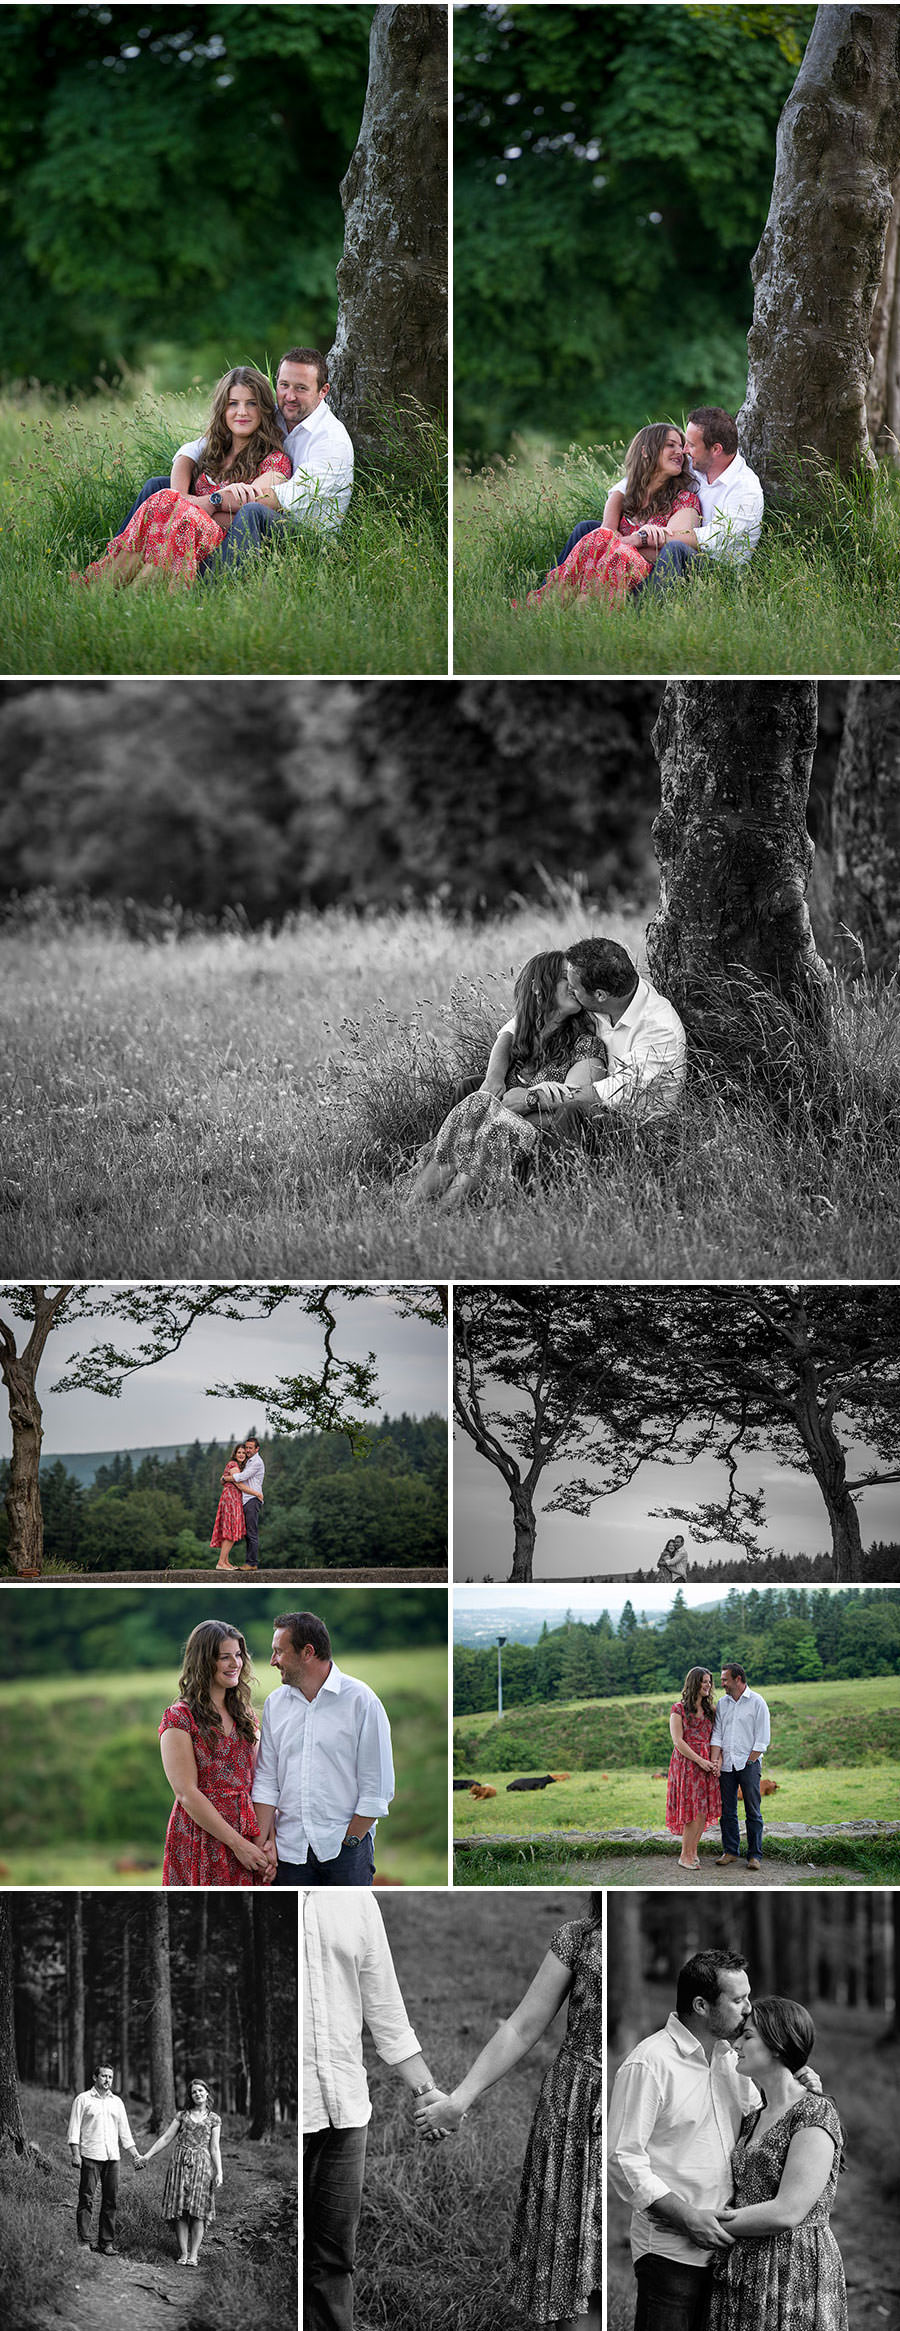 M + G | Couple in Love | Wicklow Engagement Session | Dublin Love Photographer 12